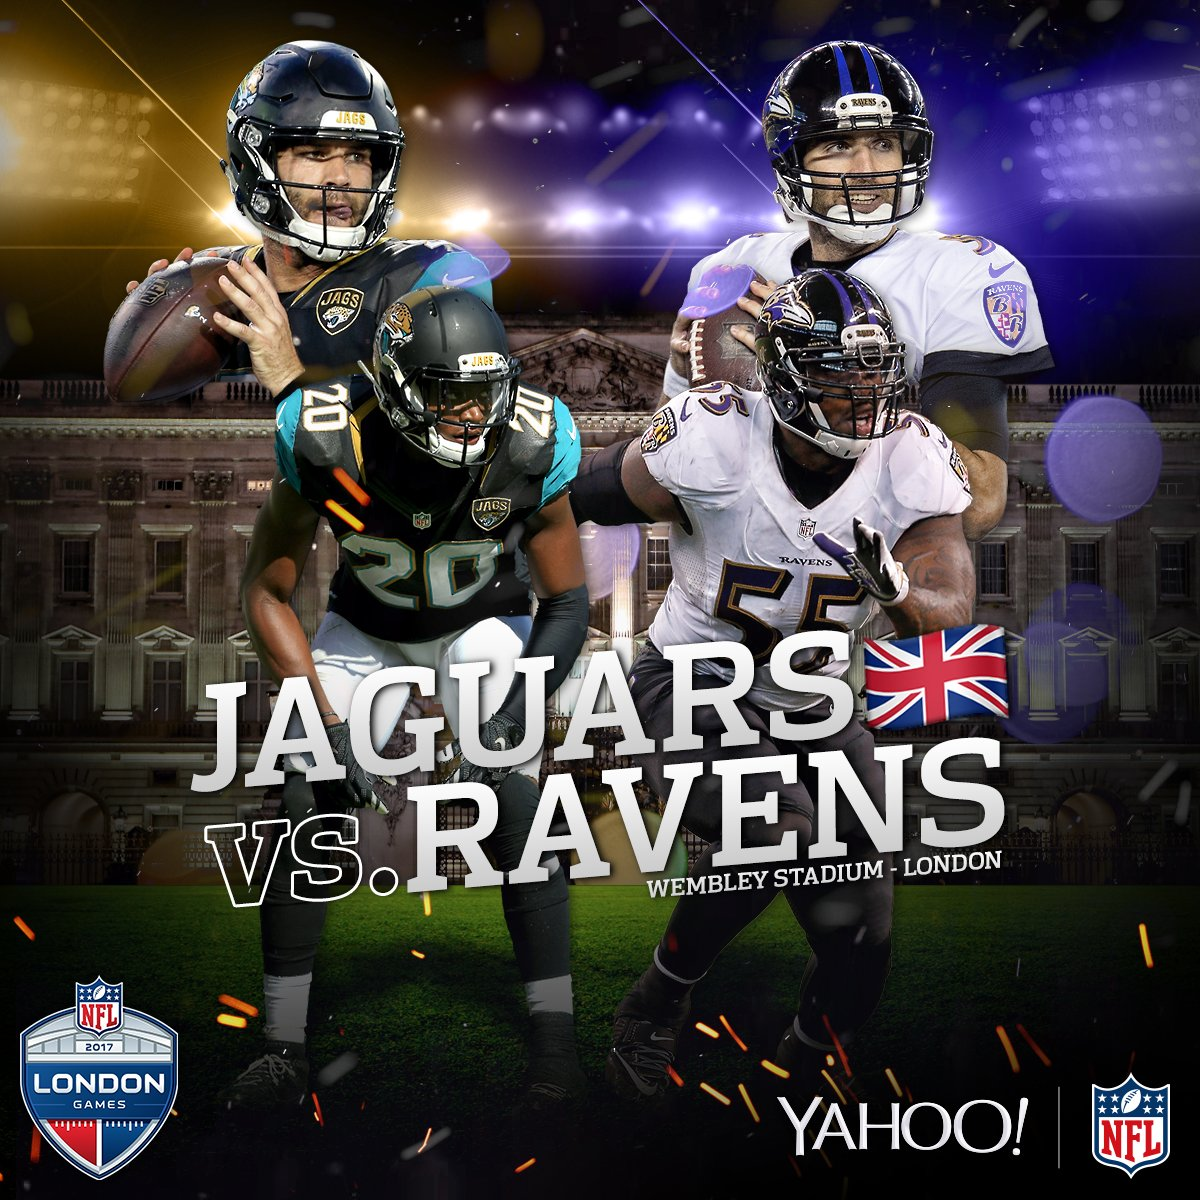 The @Ravens. The @Jaguars. In London!  #WatchWithTheWorld right now on @Yahoo: https://t.co/rwXjz93NUD #BALvsJAX https://t.co/djIHs0XkFB